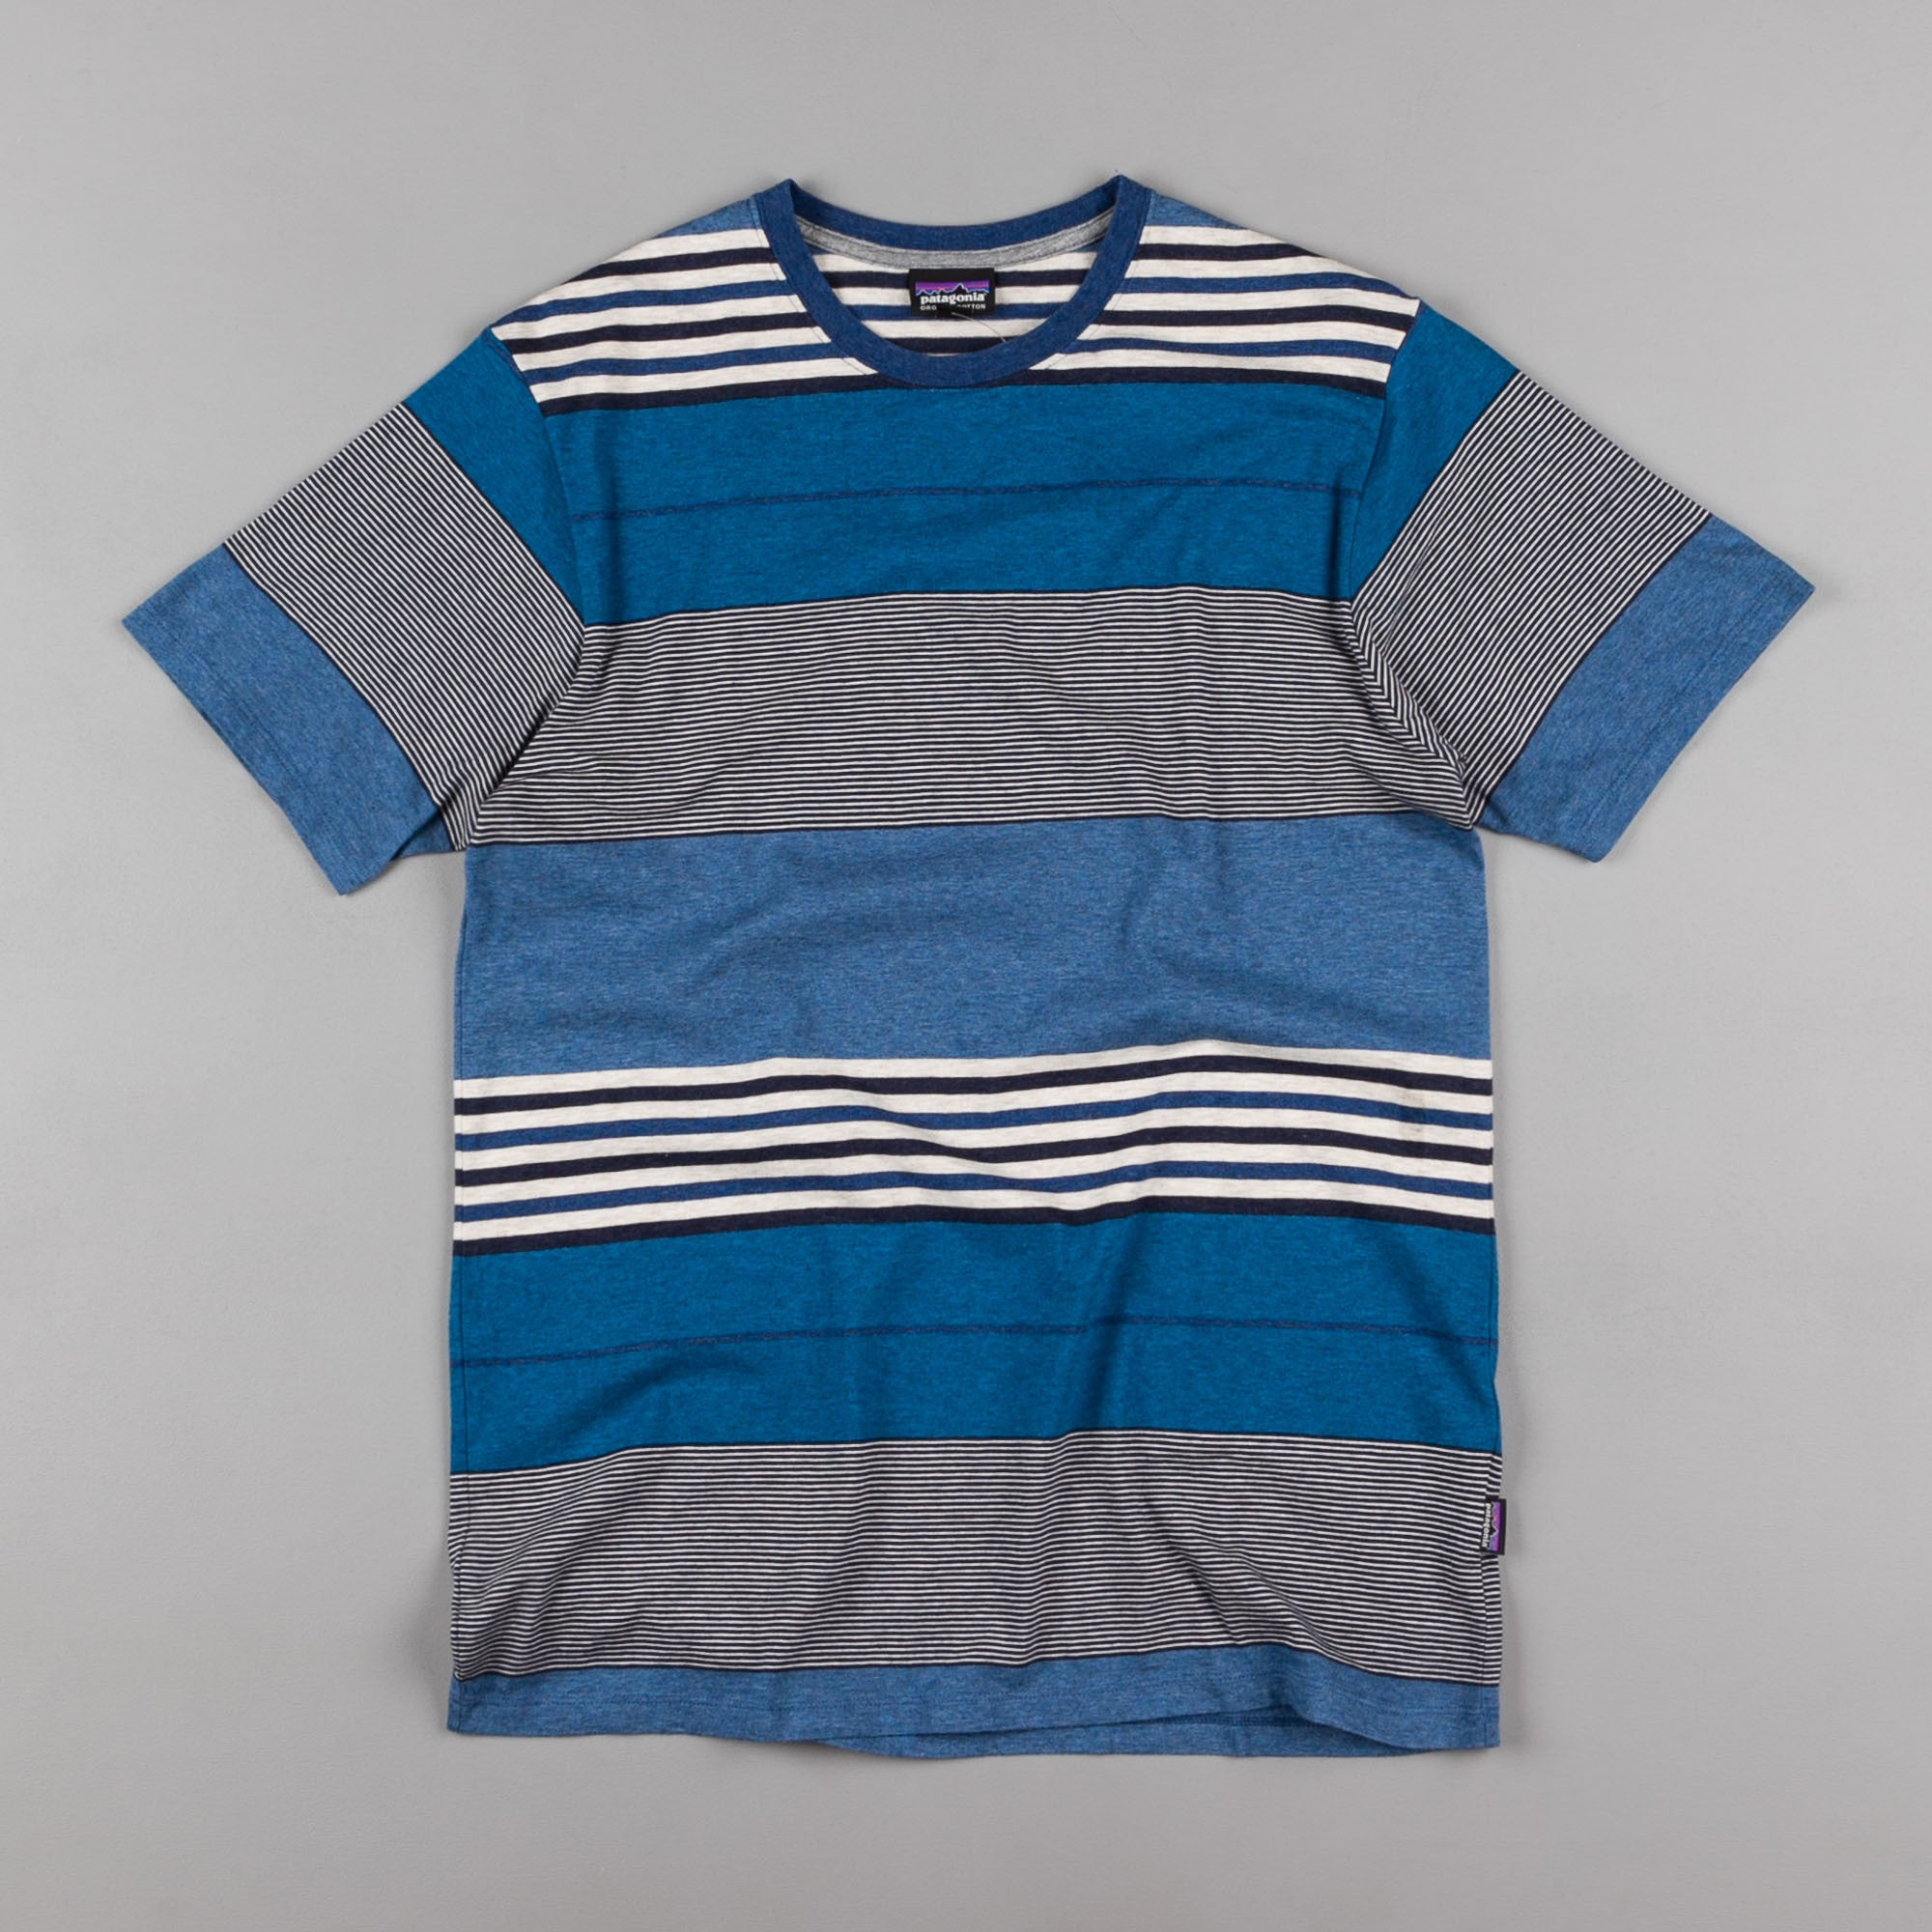 Patagonia Daily T-Shirt - Textured Fitz Stripe: Channel Blue